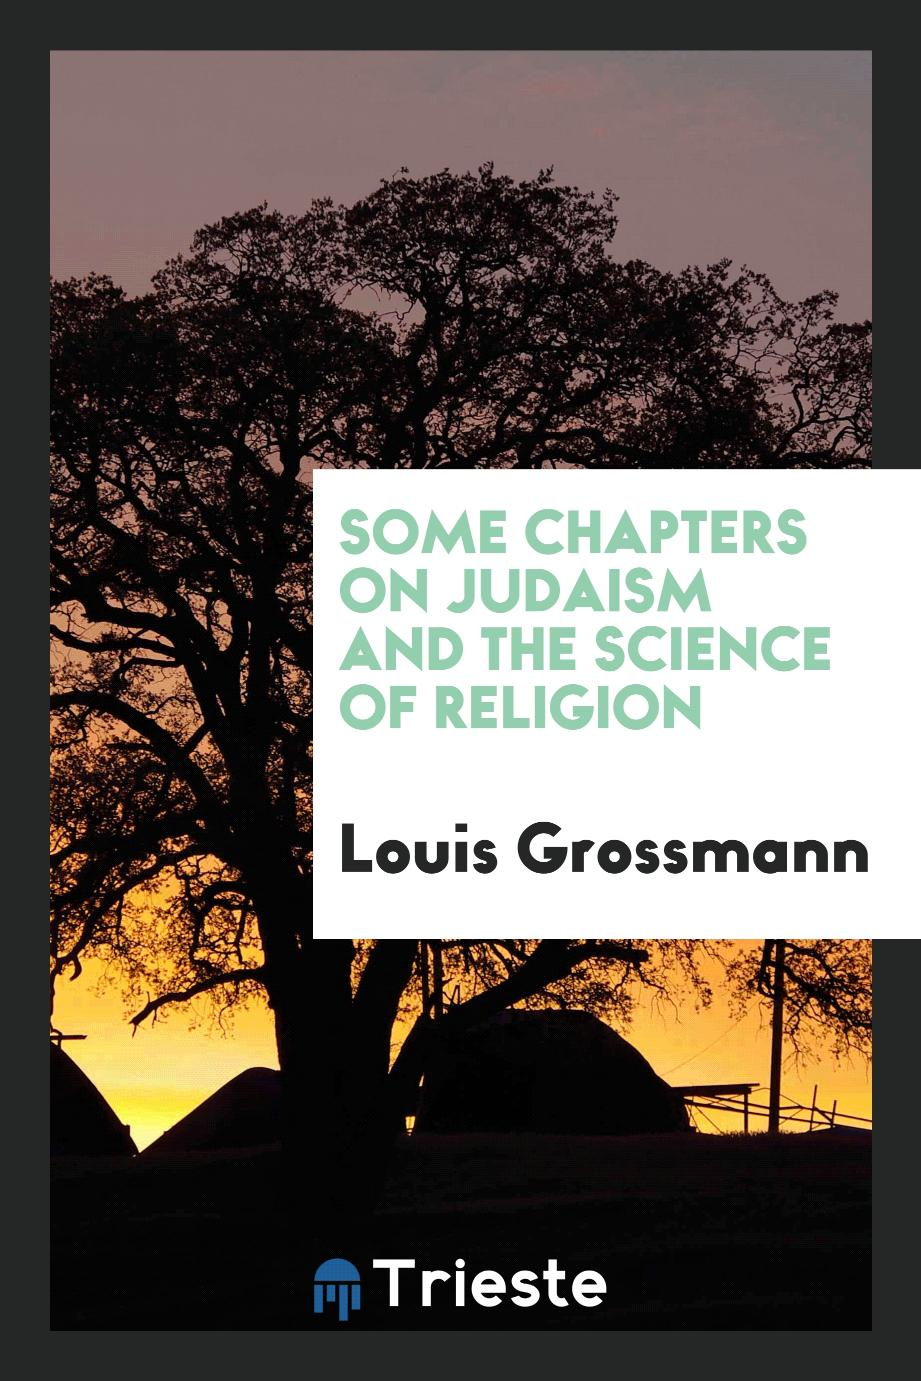 Some Chapters on Judaism and the Science of Religion